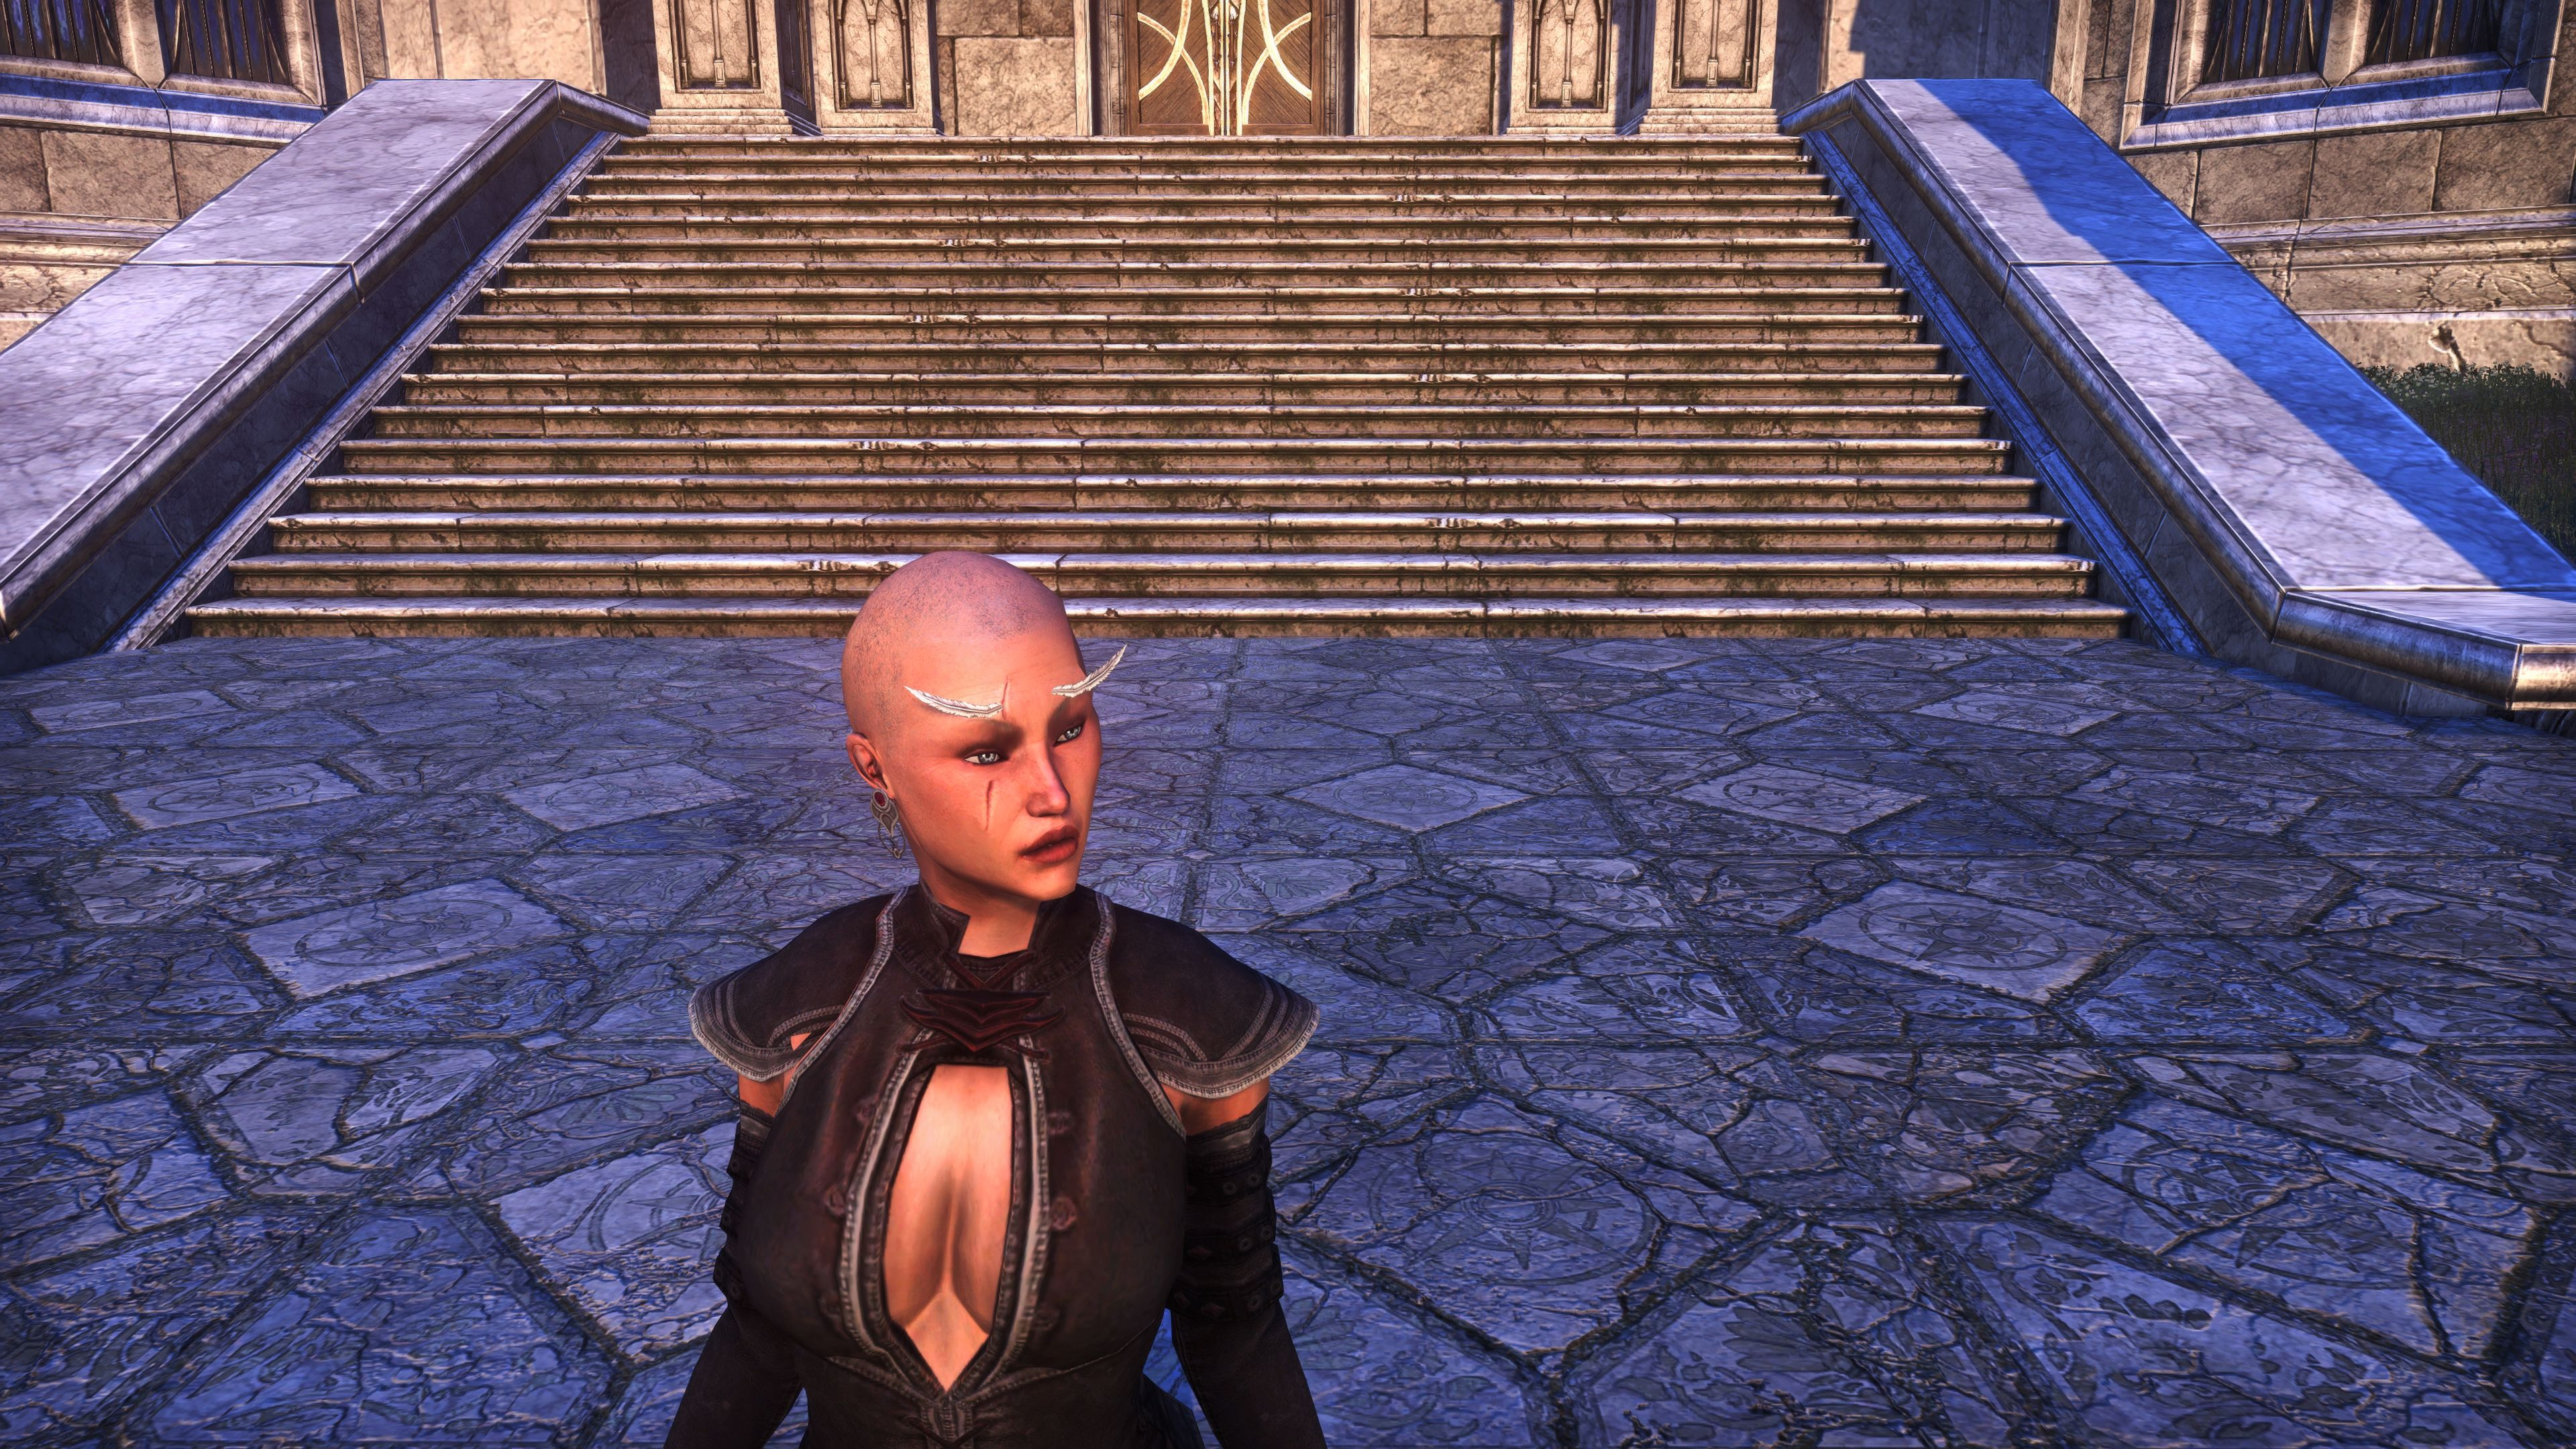 Feather Brows of Mystery (Appearance > Facial Hair), Psijic Vault Crate, The Elder Scrolls Online